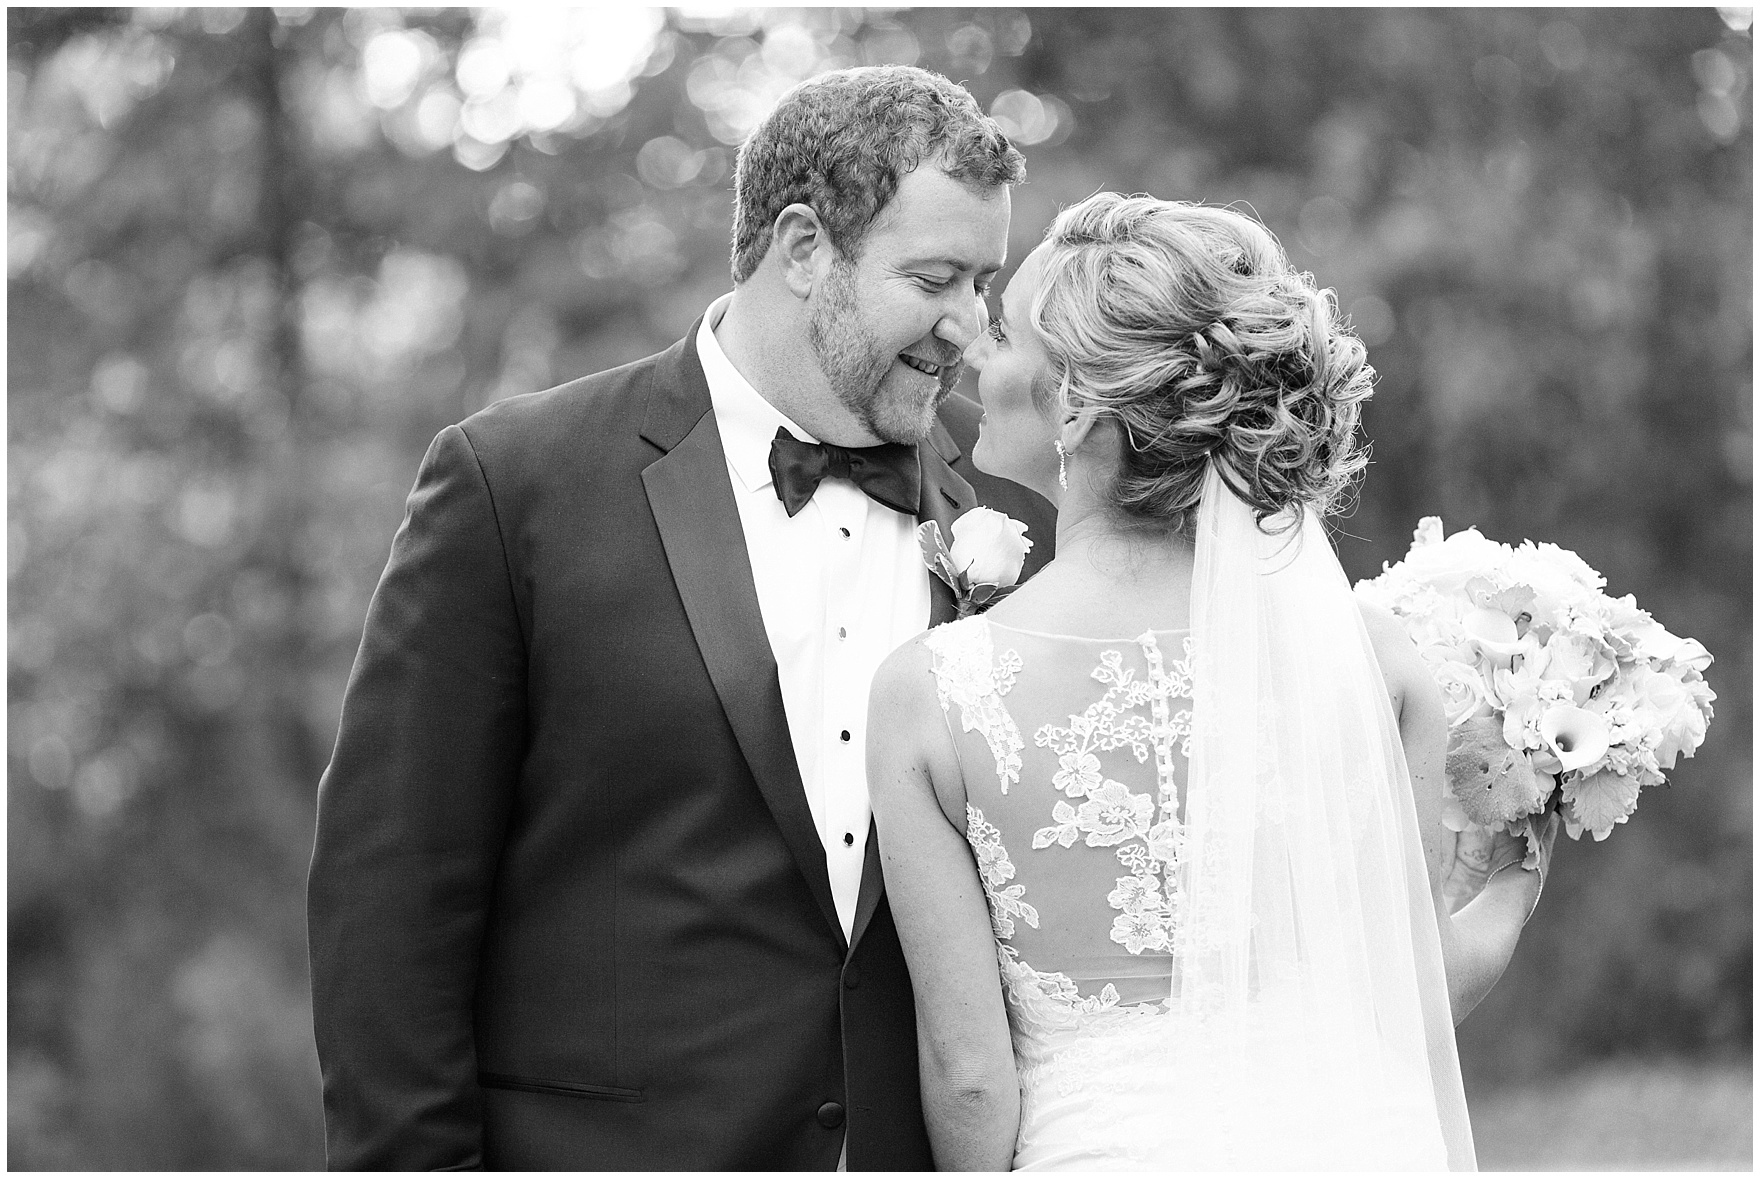 A black and white portrait of the bride and groom during a Glen Club Glenview Illinois wedding.